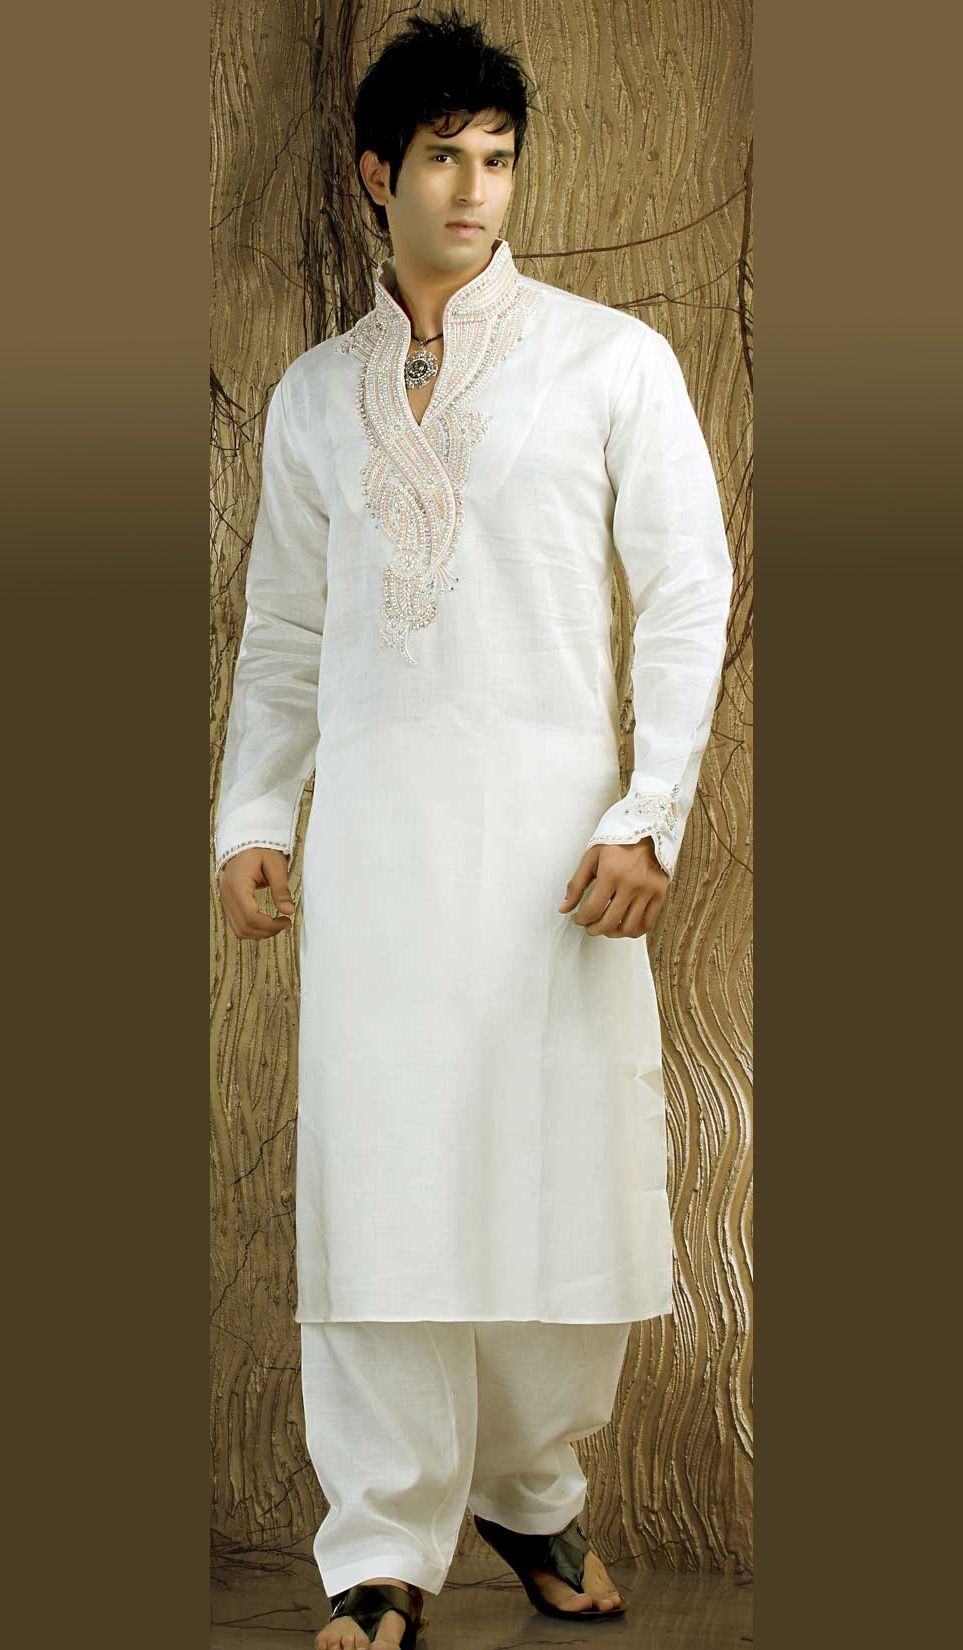 Off-White-Linen-Kurta-Pajama-with-Nice-Embroidery | Sherwani ...